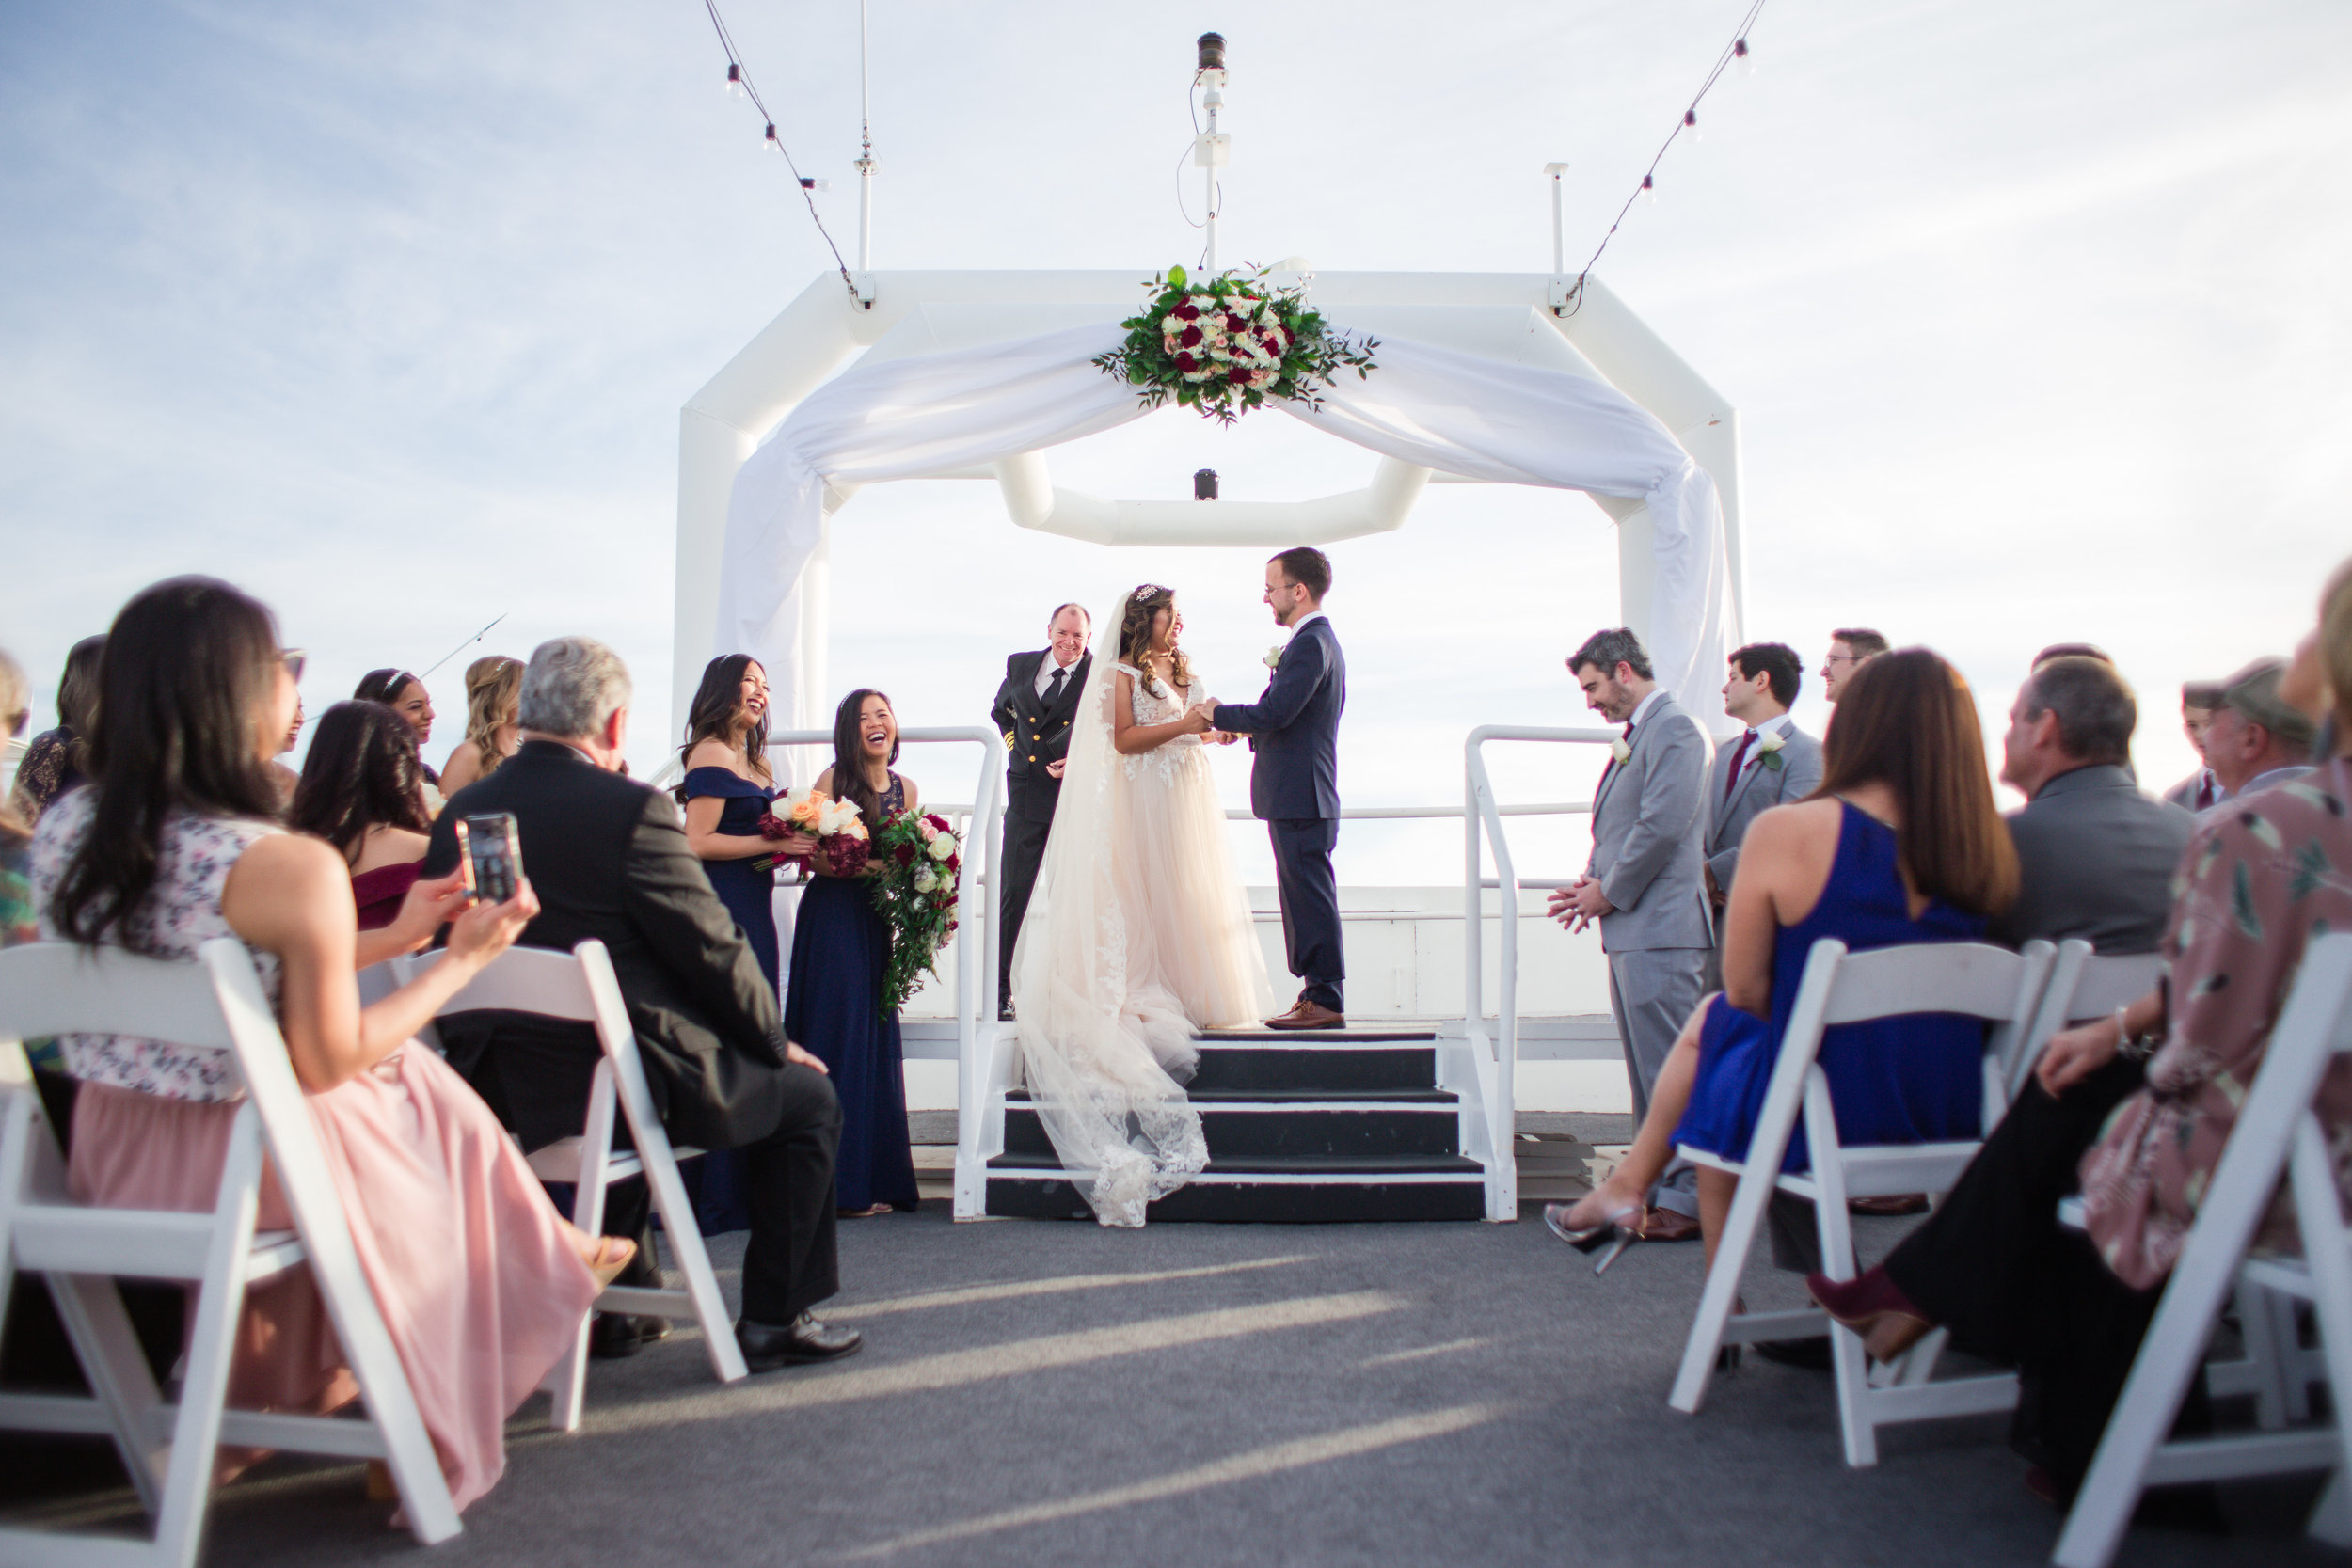 Solaris-Yacht-Destin-Florida-Wedding-Photography-Jerica-Chad-14.jpg